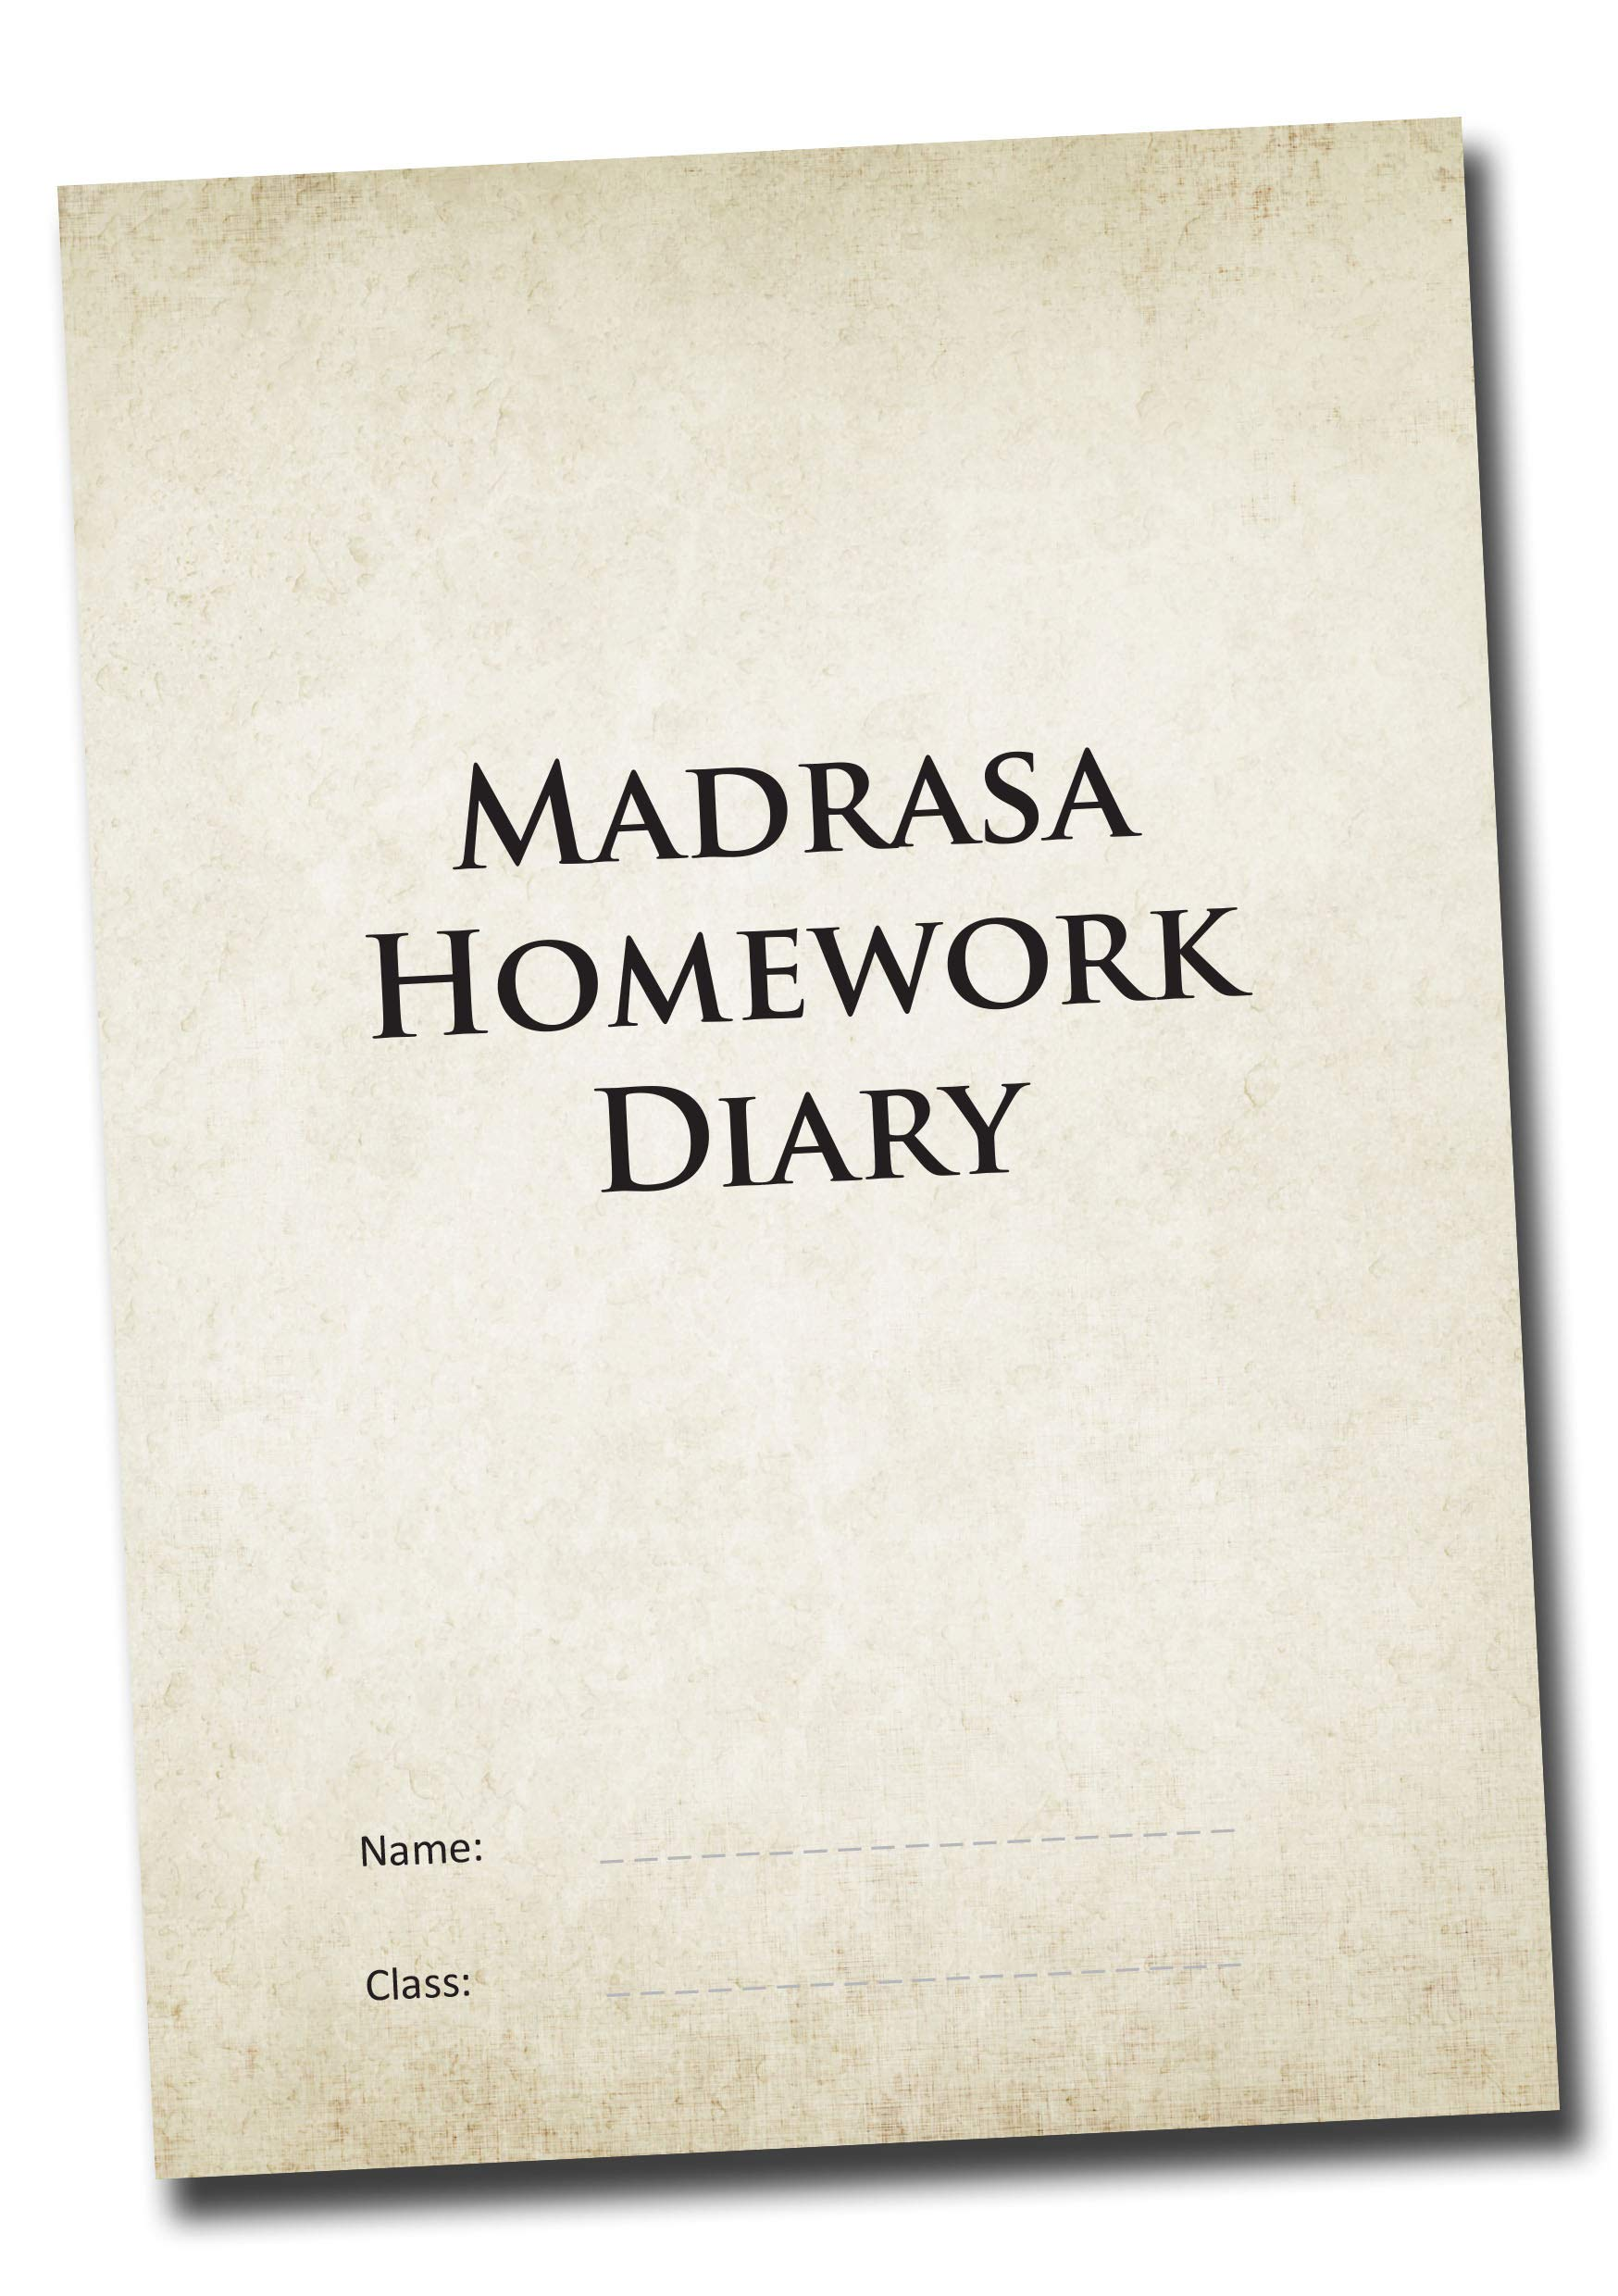 essay homework diary slideshow pdf perth modern school with homework